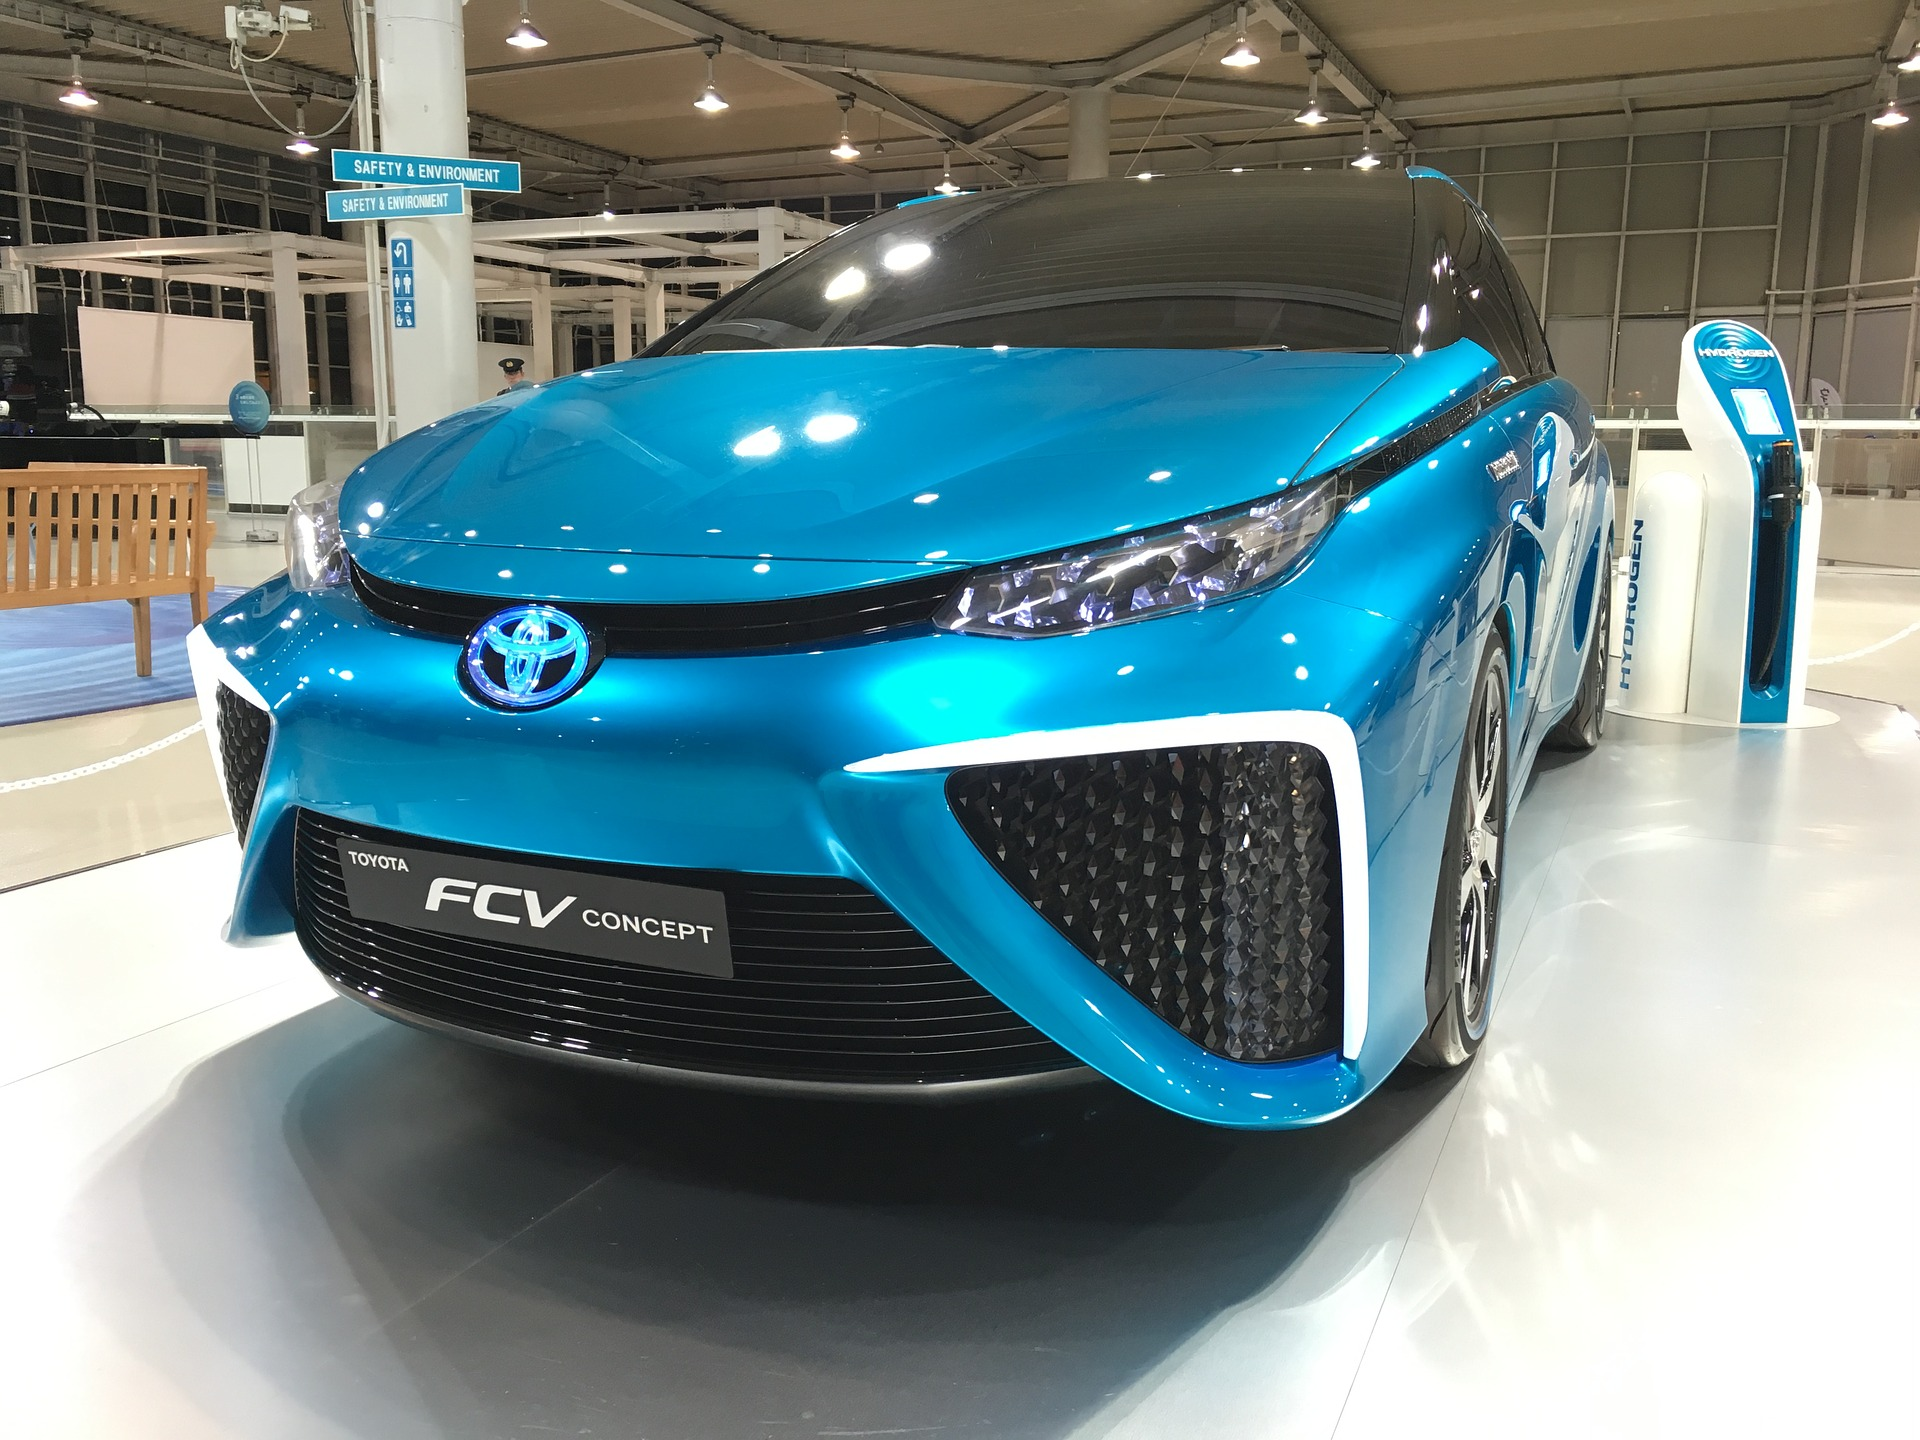 Car Facts Cars for Sale New 16 toyota Facts that Sell More Cars • Autoraptor